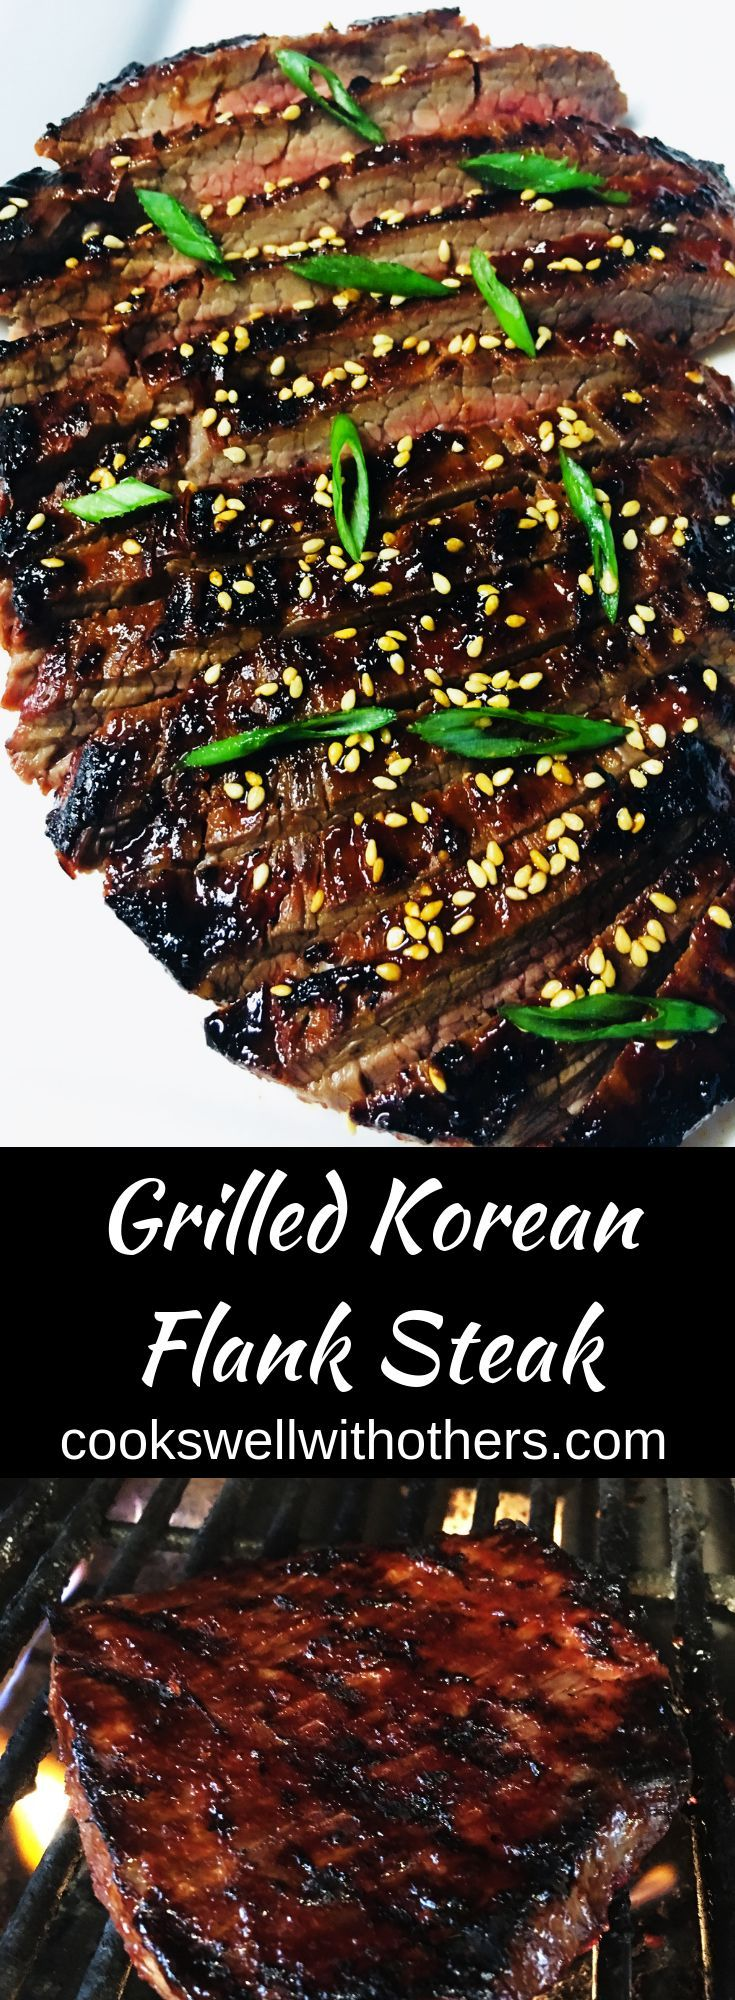 Grilled Korean Flank Steak - Cooks Well With Others